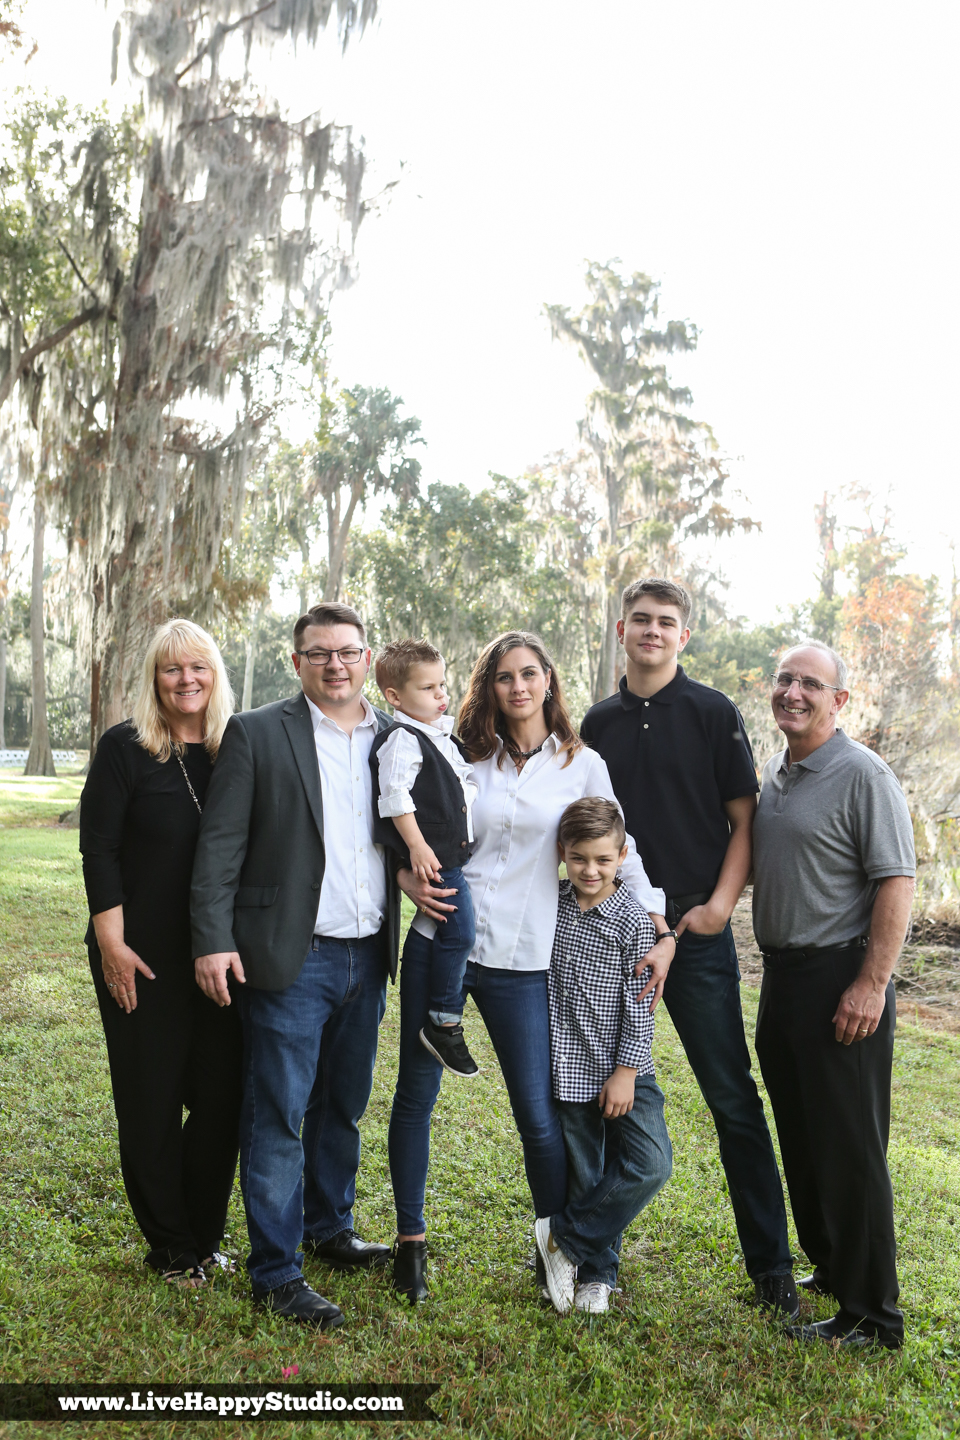 www.livehappystudio.com-family-session-photography-orlando--26.jpg